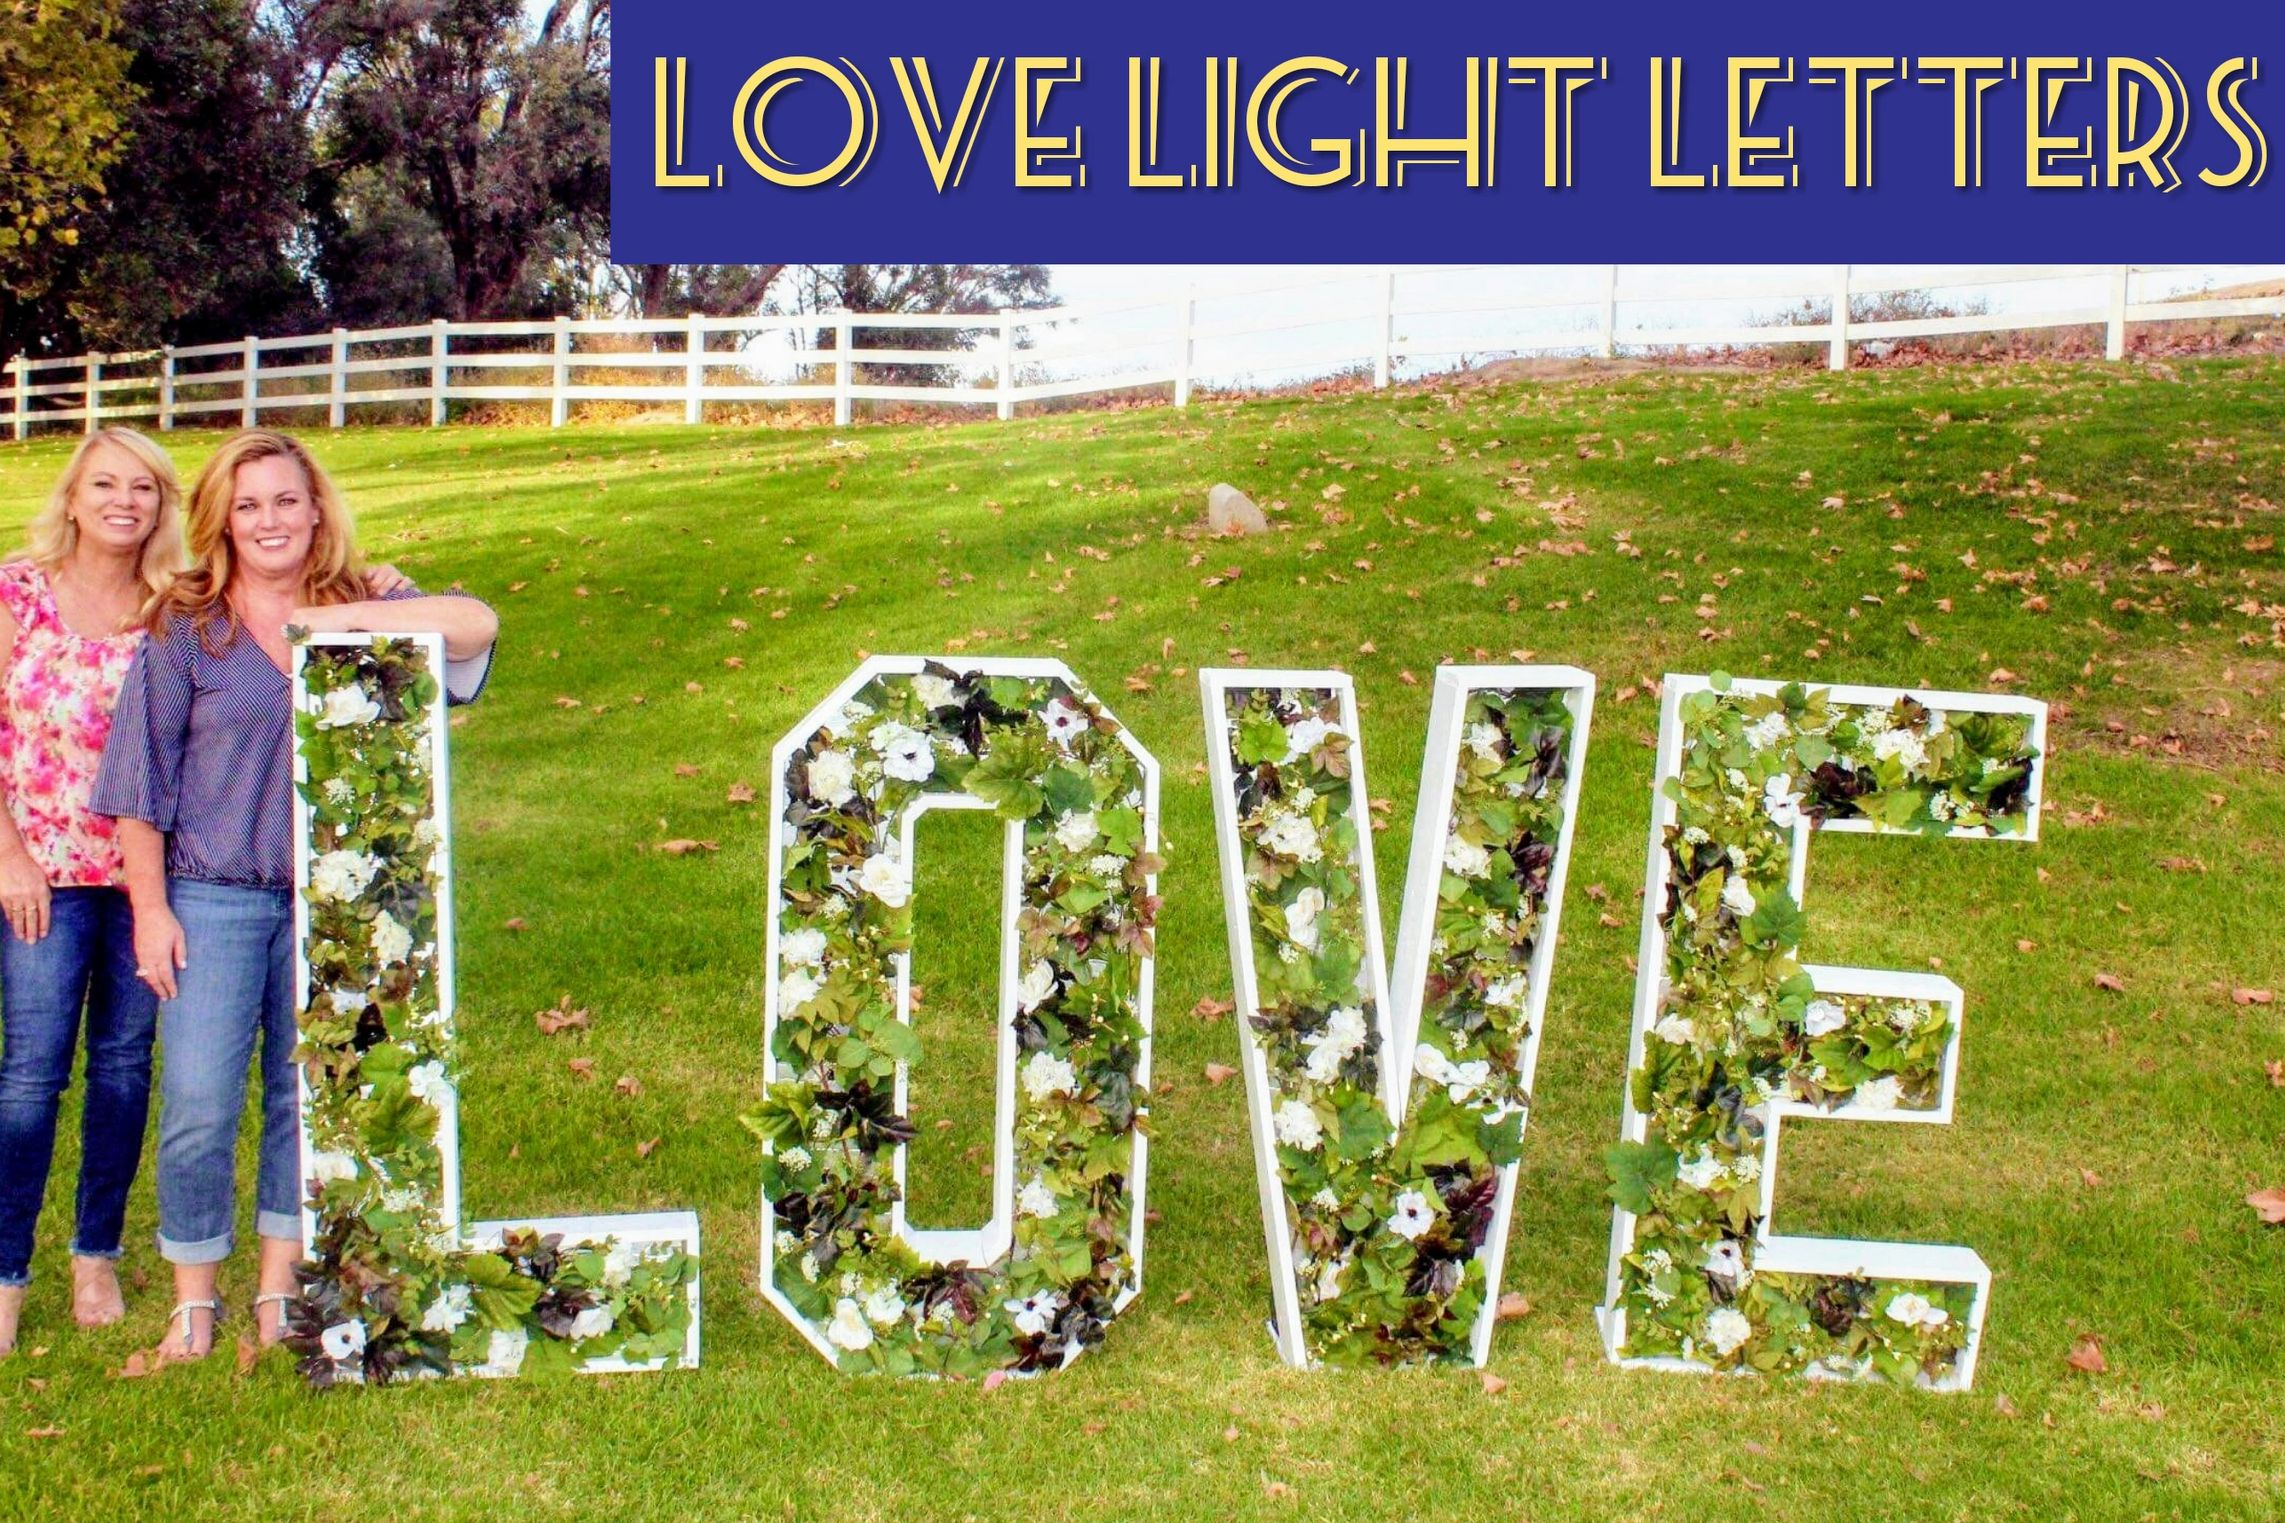 Large Lighted Marquee Rental Letters, San Diego, California